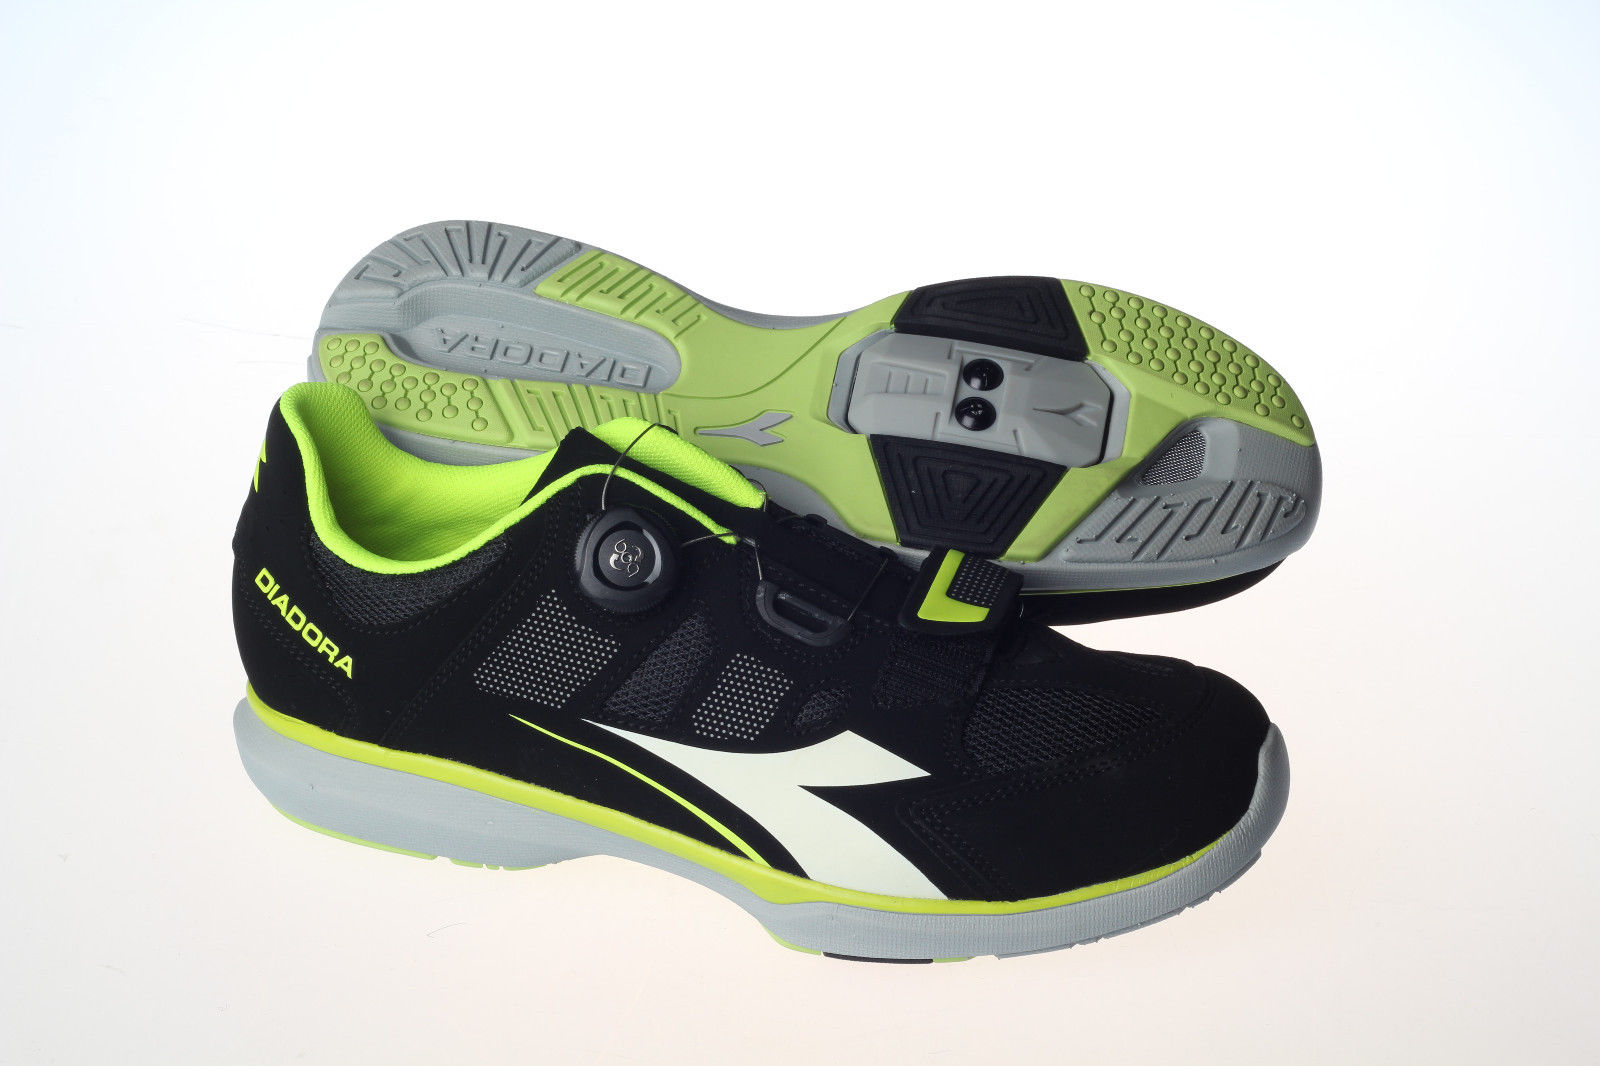 Diadora Gym Black Yellow Fluo White Shoes - Image 1